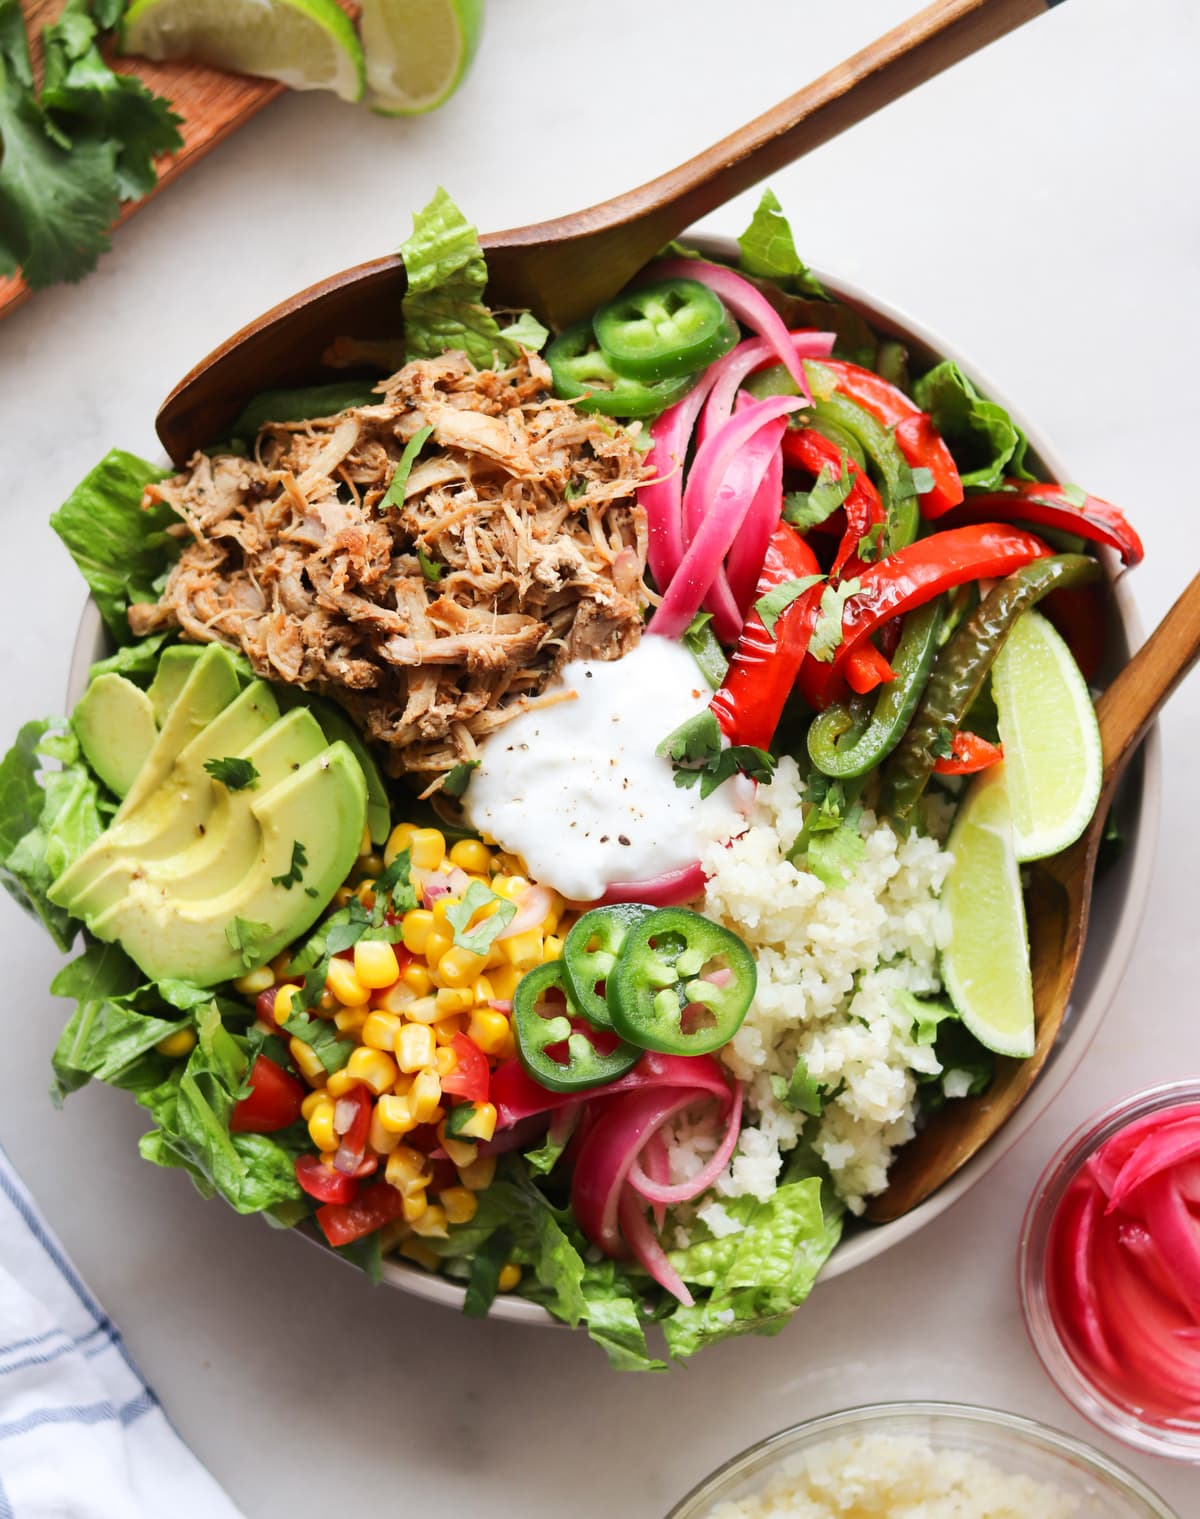 A large bowl on a white board filled with chopped romaine, carnitas pork, avocado, sour cream, cauliflower rice, and pickled onions.